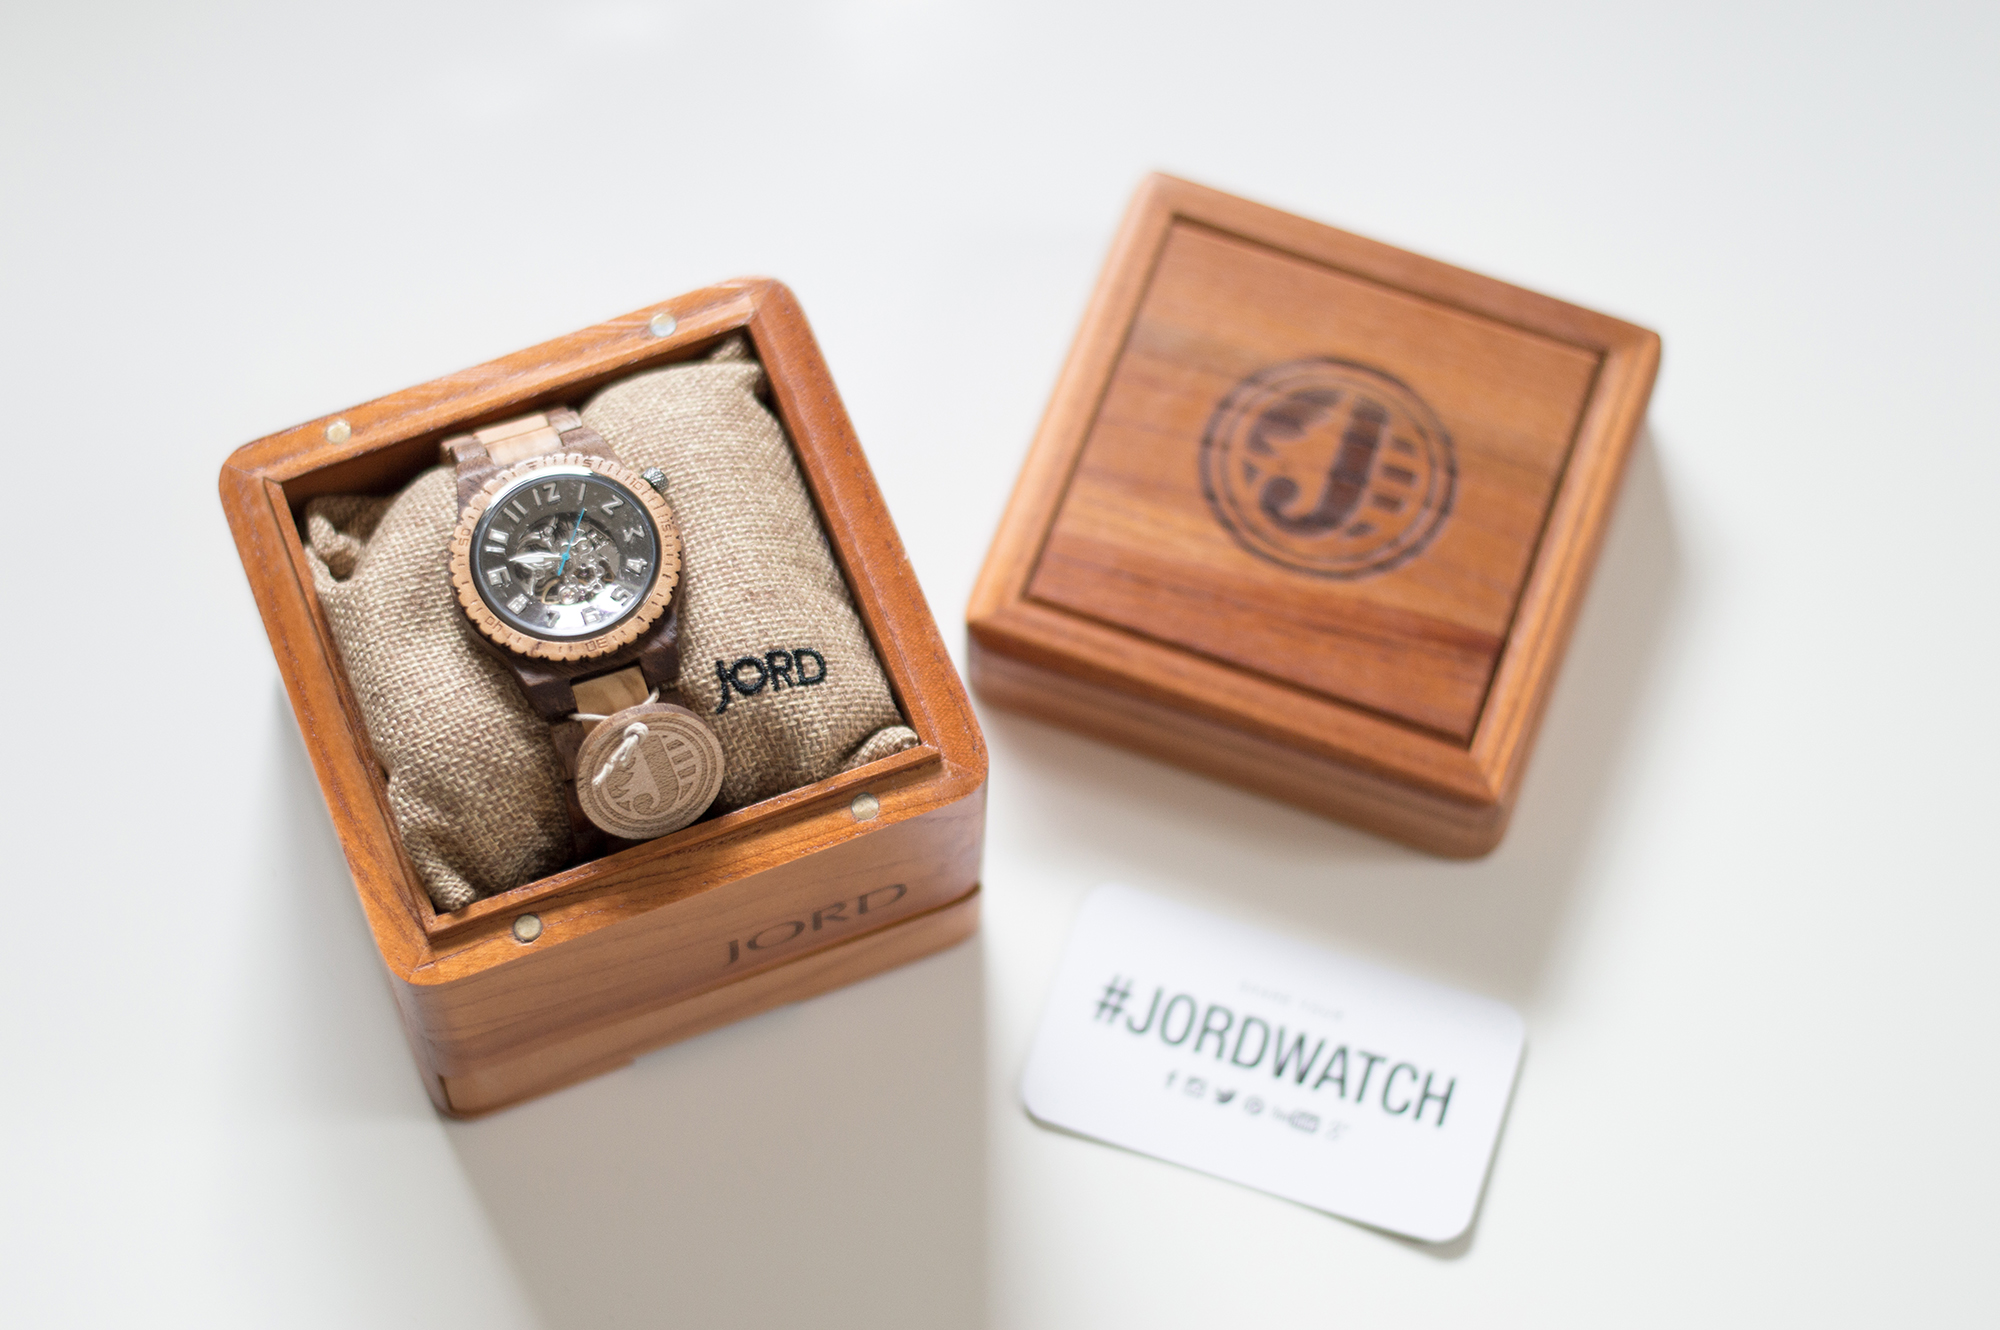 styelled-elle-elisabeth-fashion-style-blogger-jord-wood-watches-luxury-watch-dover-series-valentines-day-for-him-ootd-australian-labradoodle-03